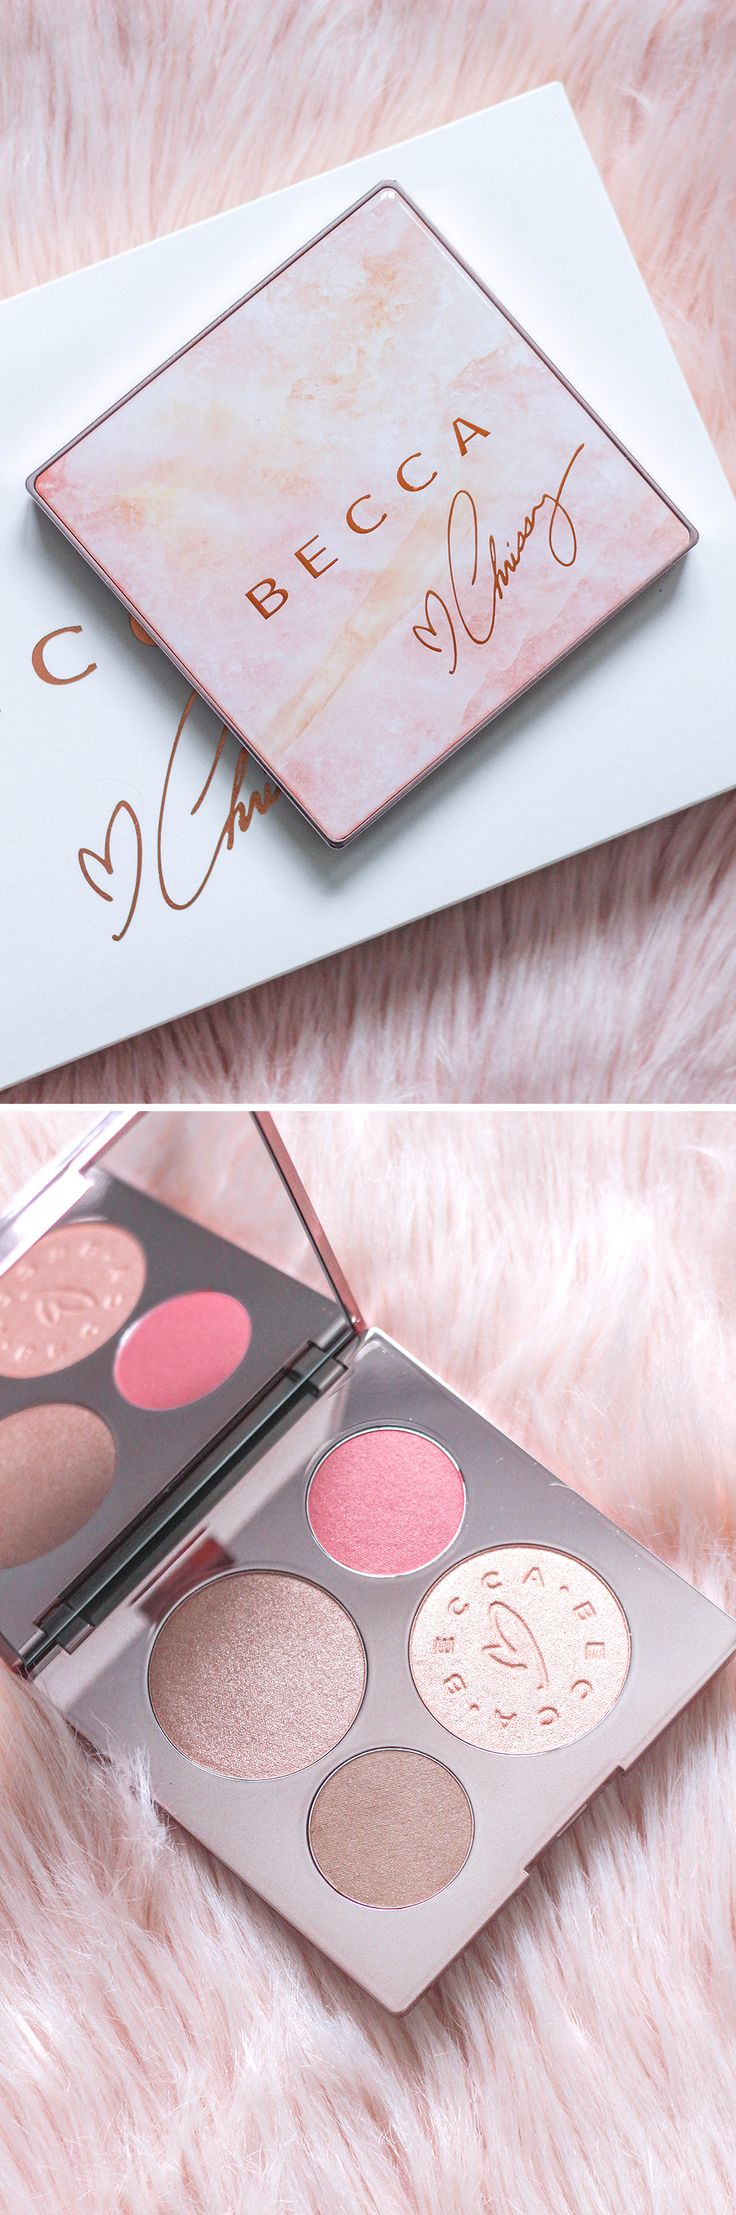 Becca Chrissy Teigen Palette Review | Becca x Chrissy Teigen Glow Face Palette | Makeup Review